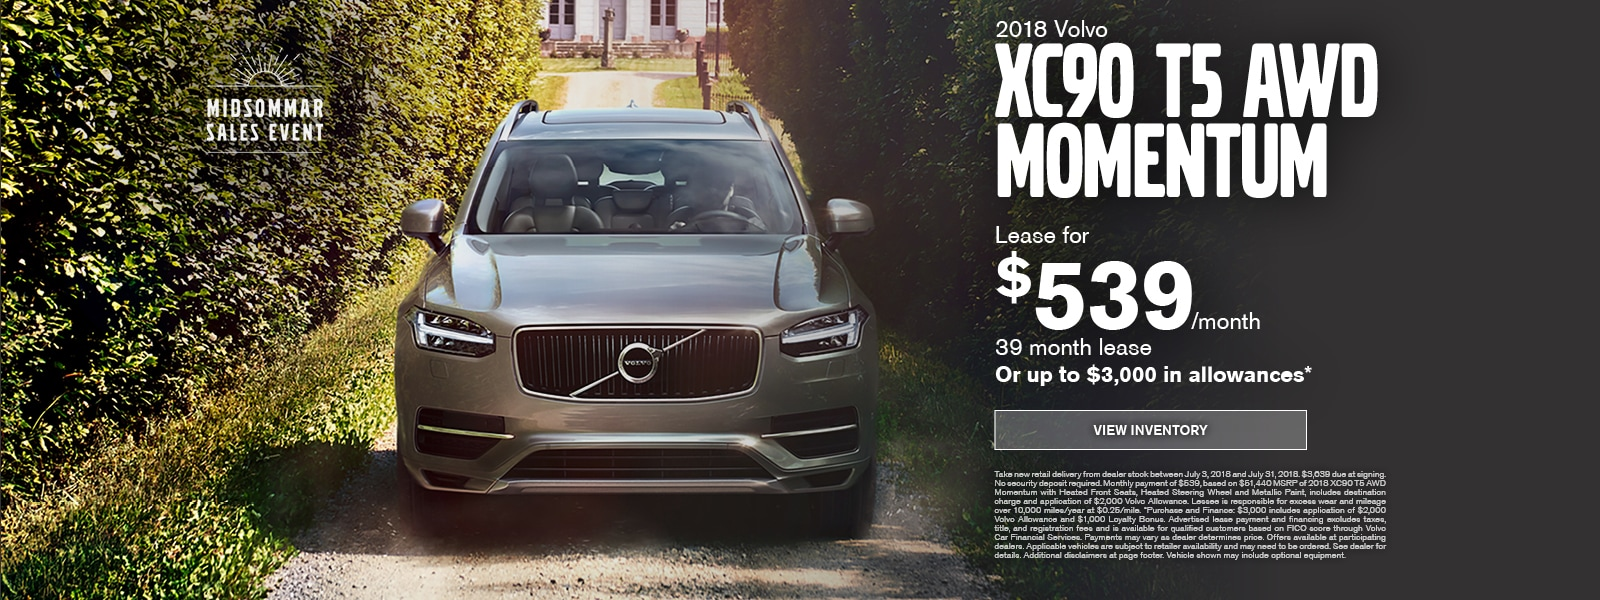 New 2018-2019 Volvo & Used Car Dealer | Volvo Cars Seattle ...